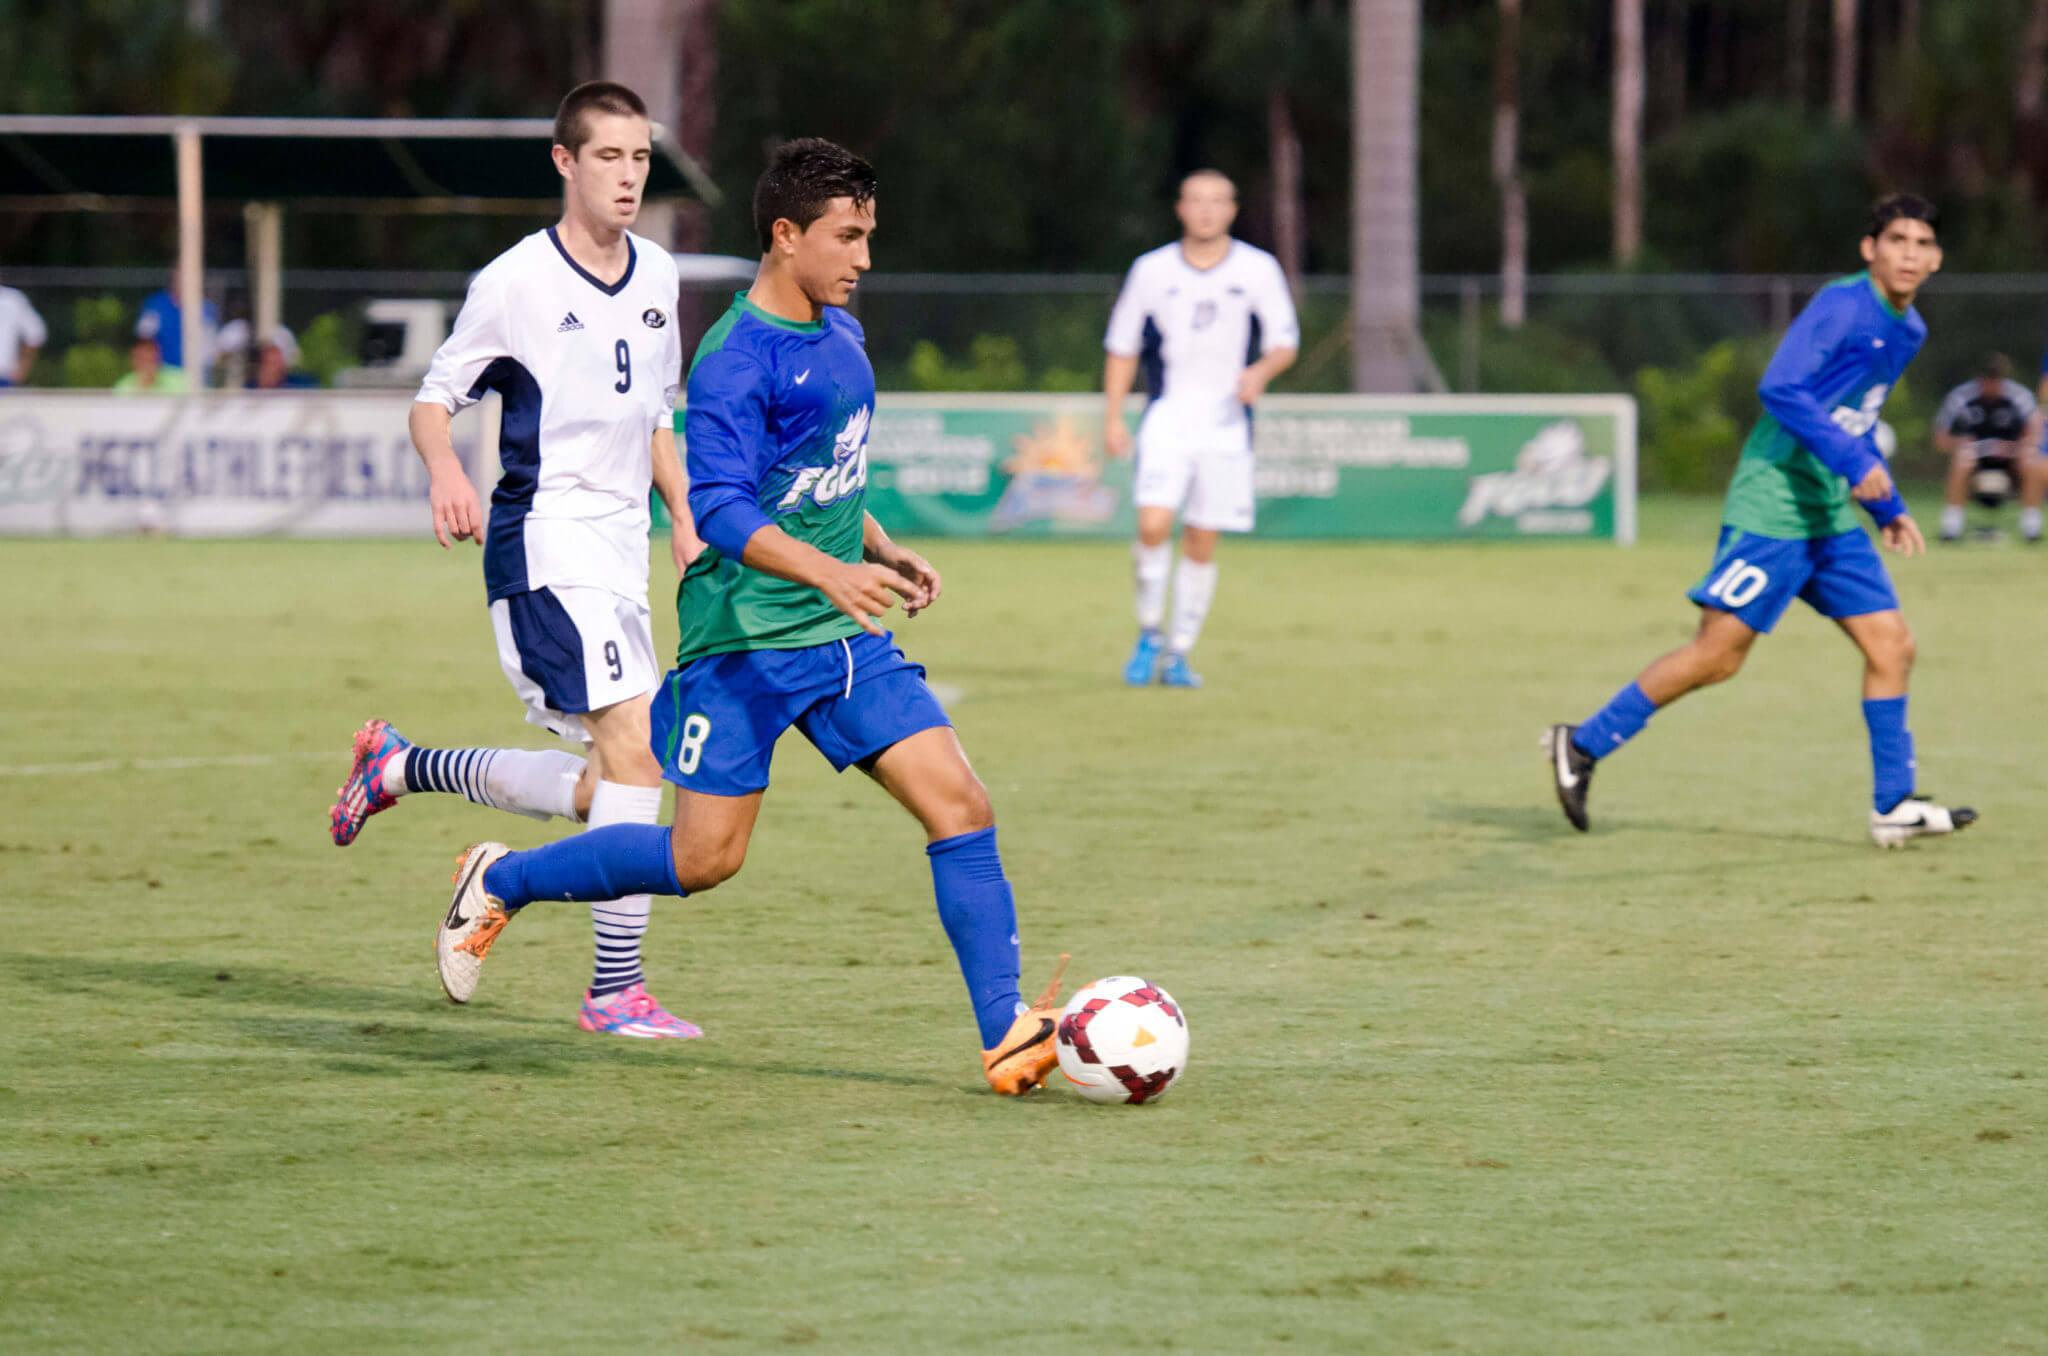 FGCU men's soccer ties two games; now ranked 24th in the nation